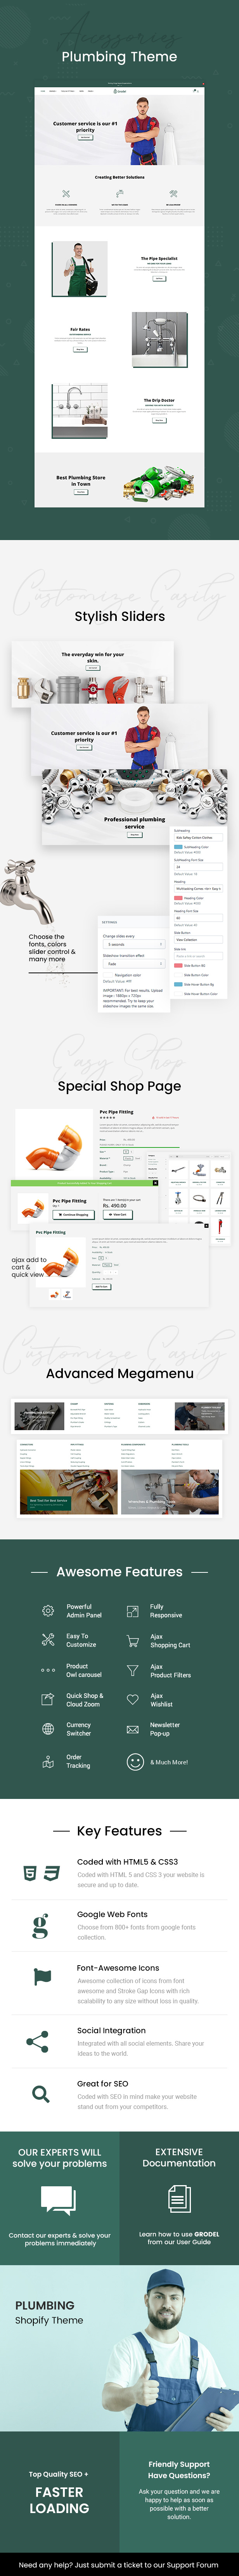 Grodel - Plumbing & Tools Store Shopify Theme - 1